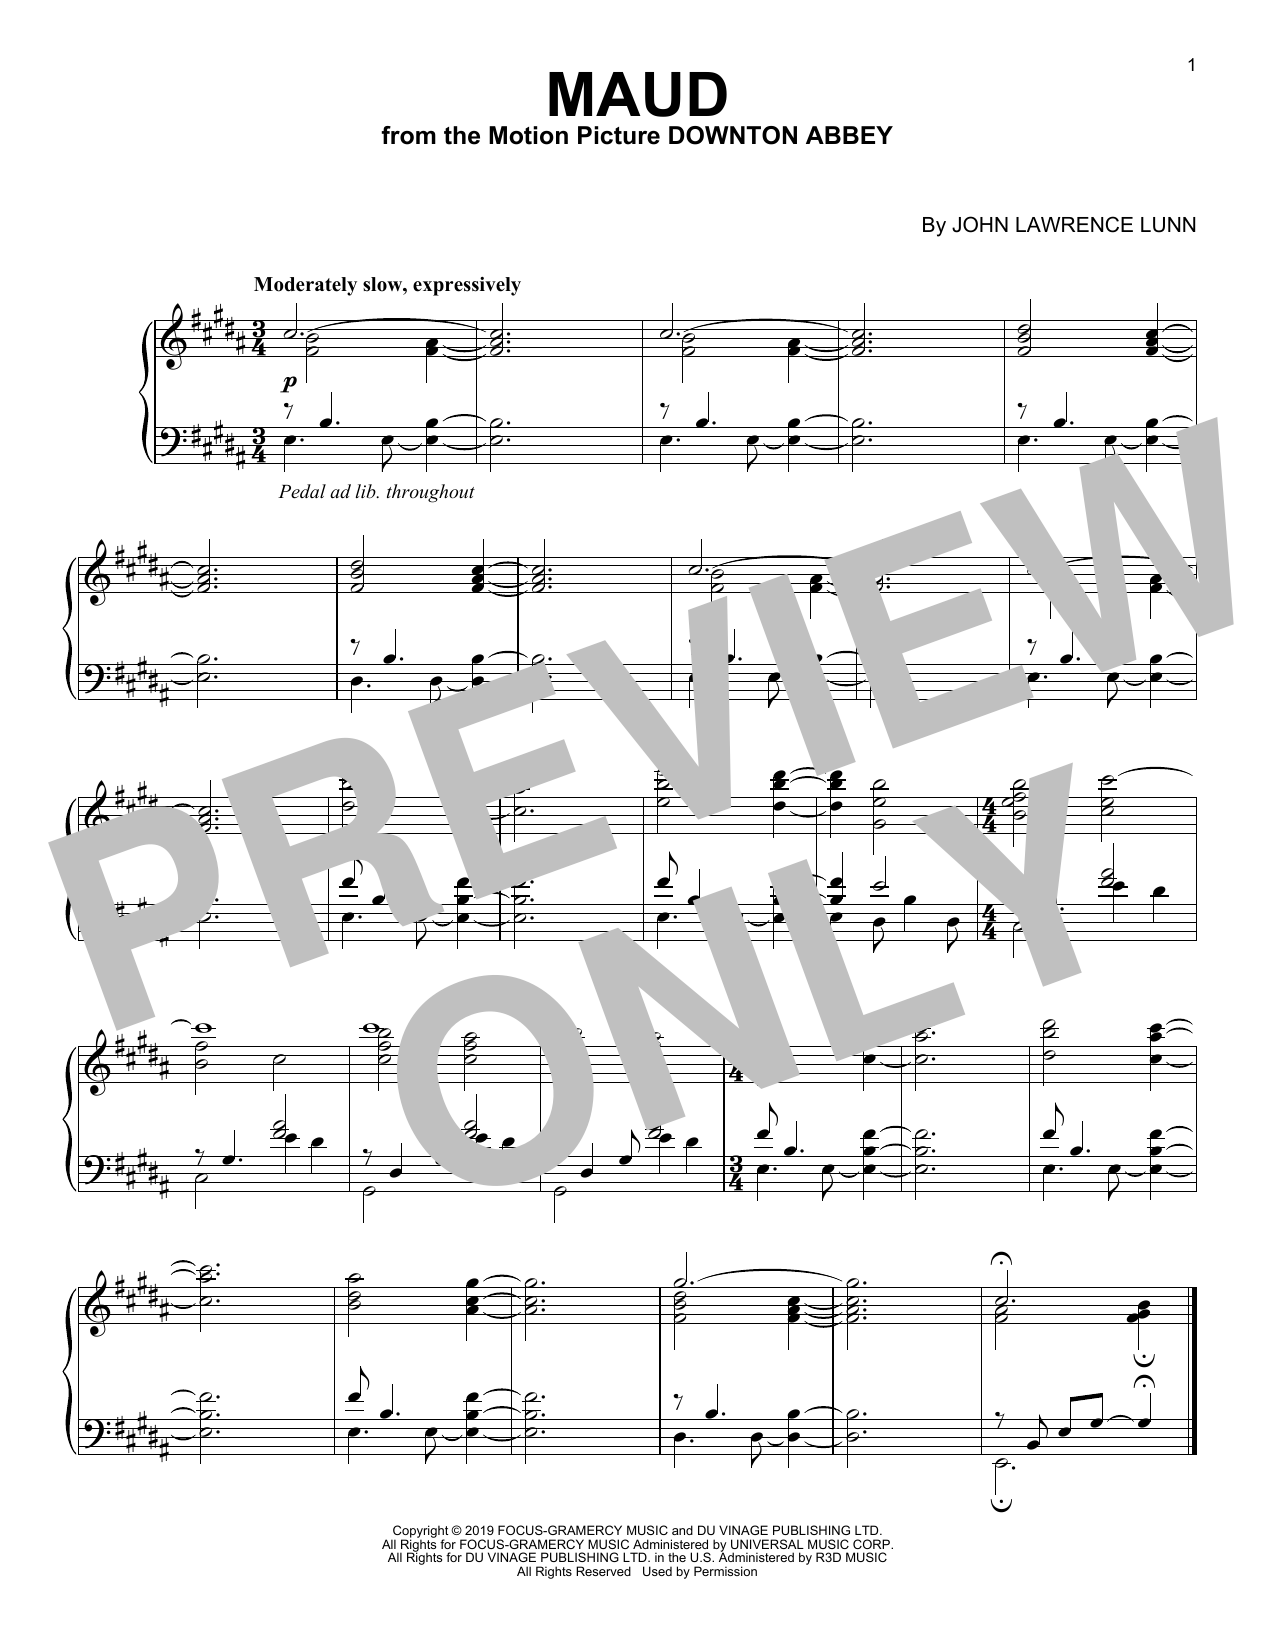 Maud (from the Motion Picture Downton Abbey) (Piano Solo)